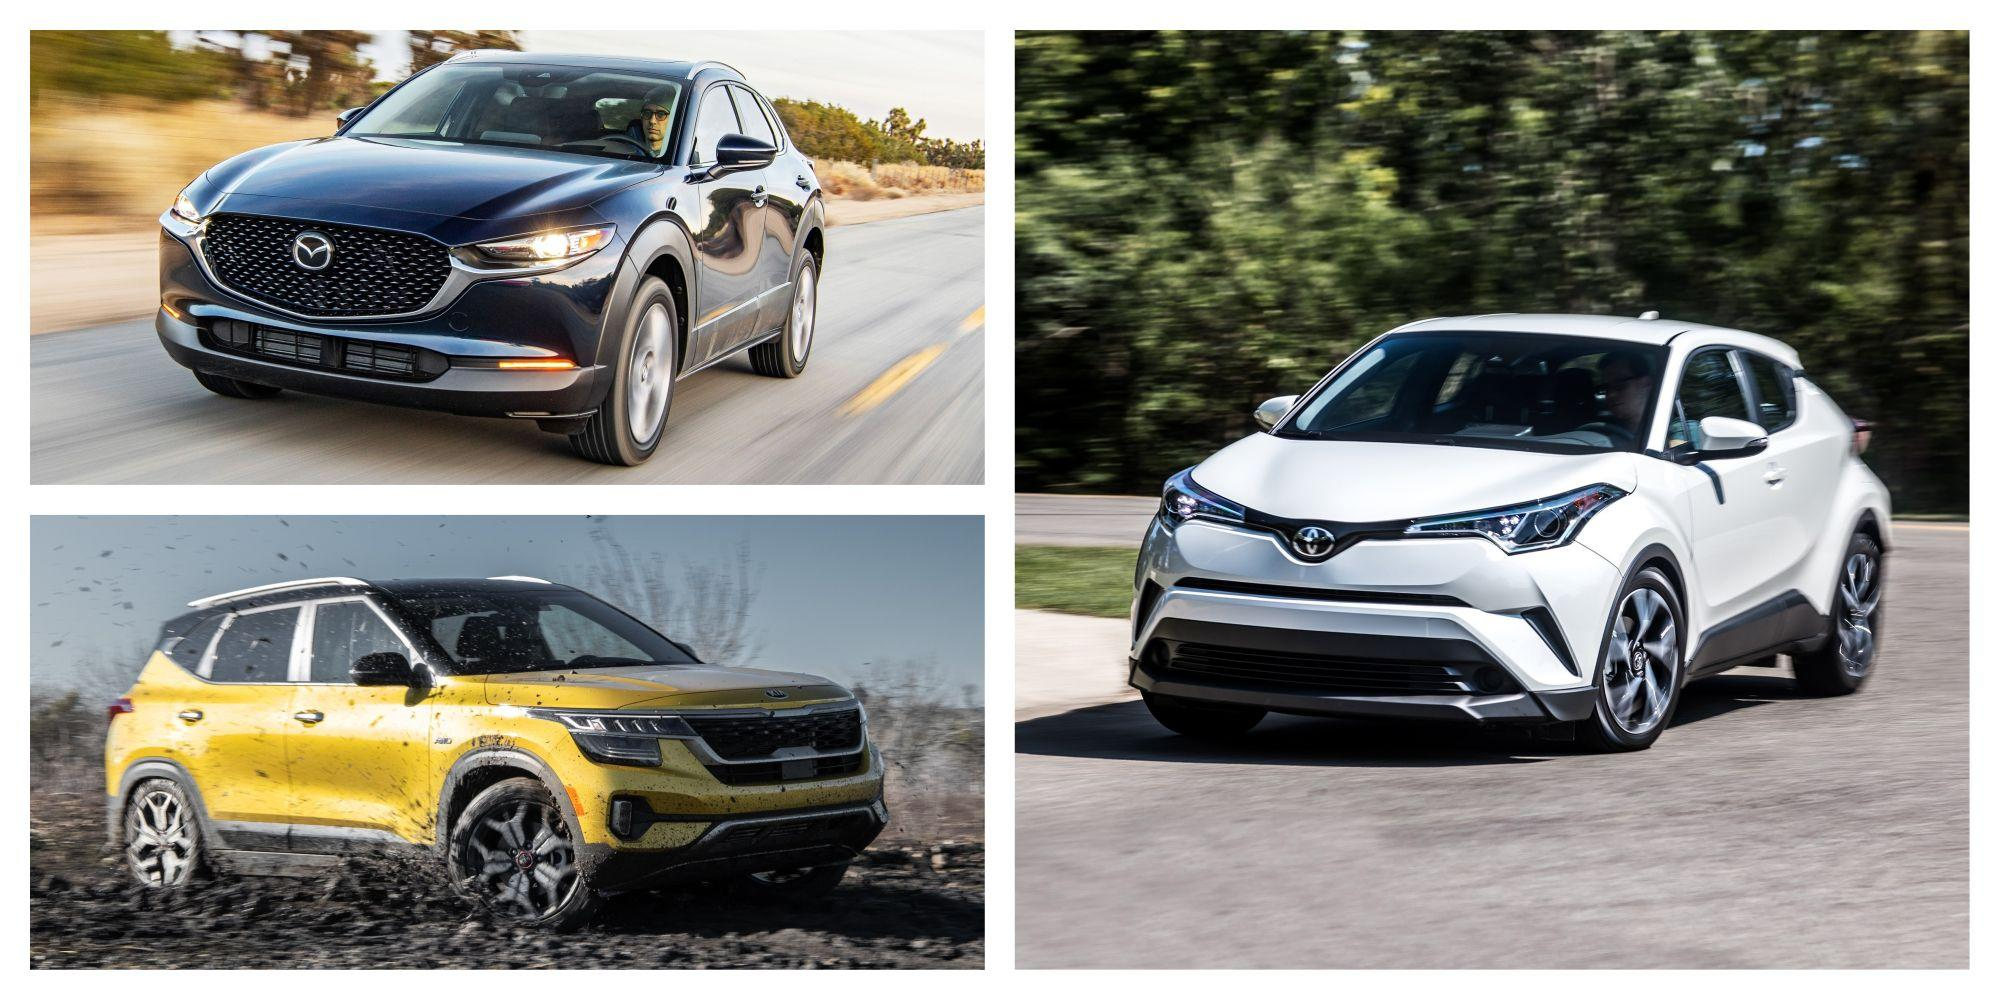 """<p>The popularity of crossovers and SUVs isn't slowing down, as evidenced by the vehicle types popping up in every size and at every price point. Need something tall and small? A subcompact crossover might just be what you're looking for. These are the least-expensive crossovers you can buy, situated below <a href=""""https://www.caranddriver.com/features/g15380025/best-small-compact-suv-truck/"""" rel=""""nofollow noopener"""" target=""""_blank"""" data-ylk=""""slk:compact crossovers"""" class=""""link rapid-noclick-resp"""">compact crossovers</a>, and they are all based on everyday small car platforms. Some don't even offer all-wheel drive, and many don't offer much interior or cargo room. But they do have the look, with rugged-adjacent body cladding, plus that must-have tall seating position. To get a baseline on the current offerings, we've ordered the segment by goodness, starting with the worst and ending with the best.</p>"""